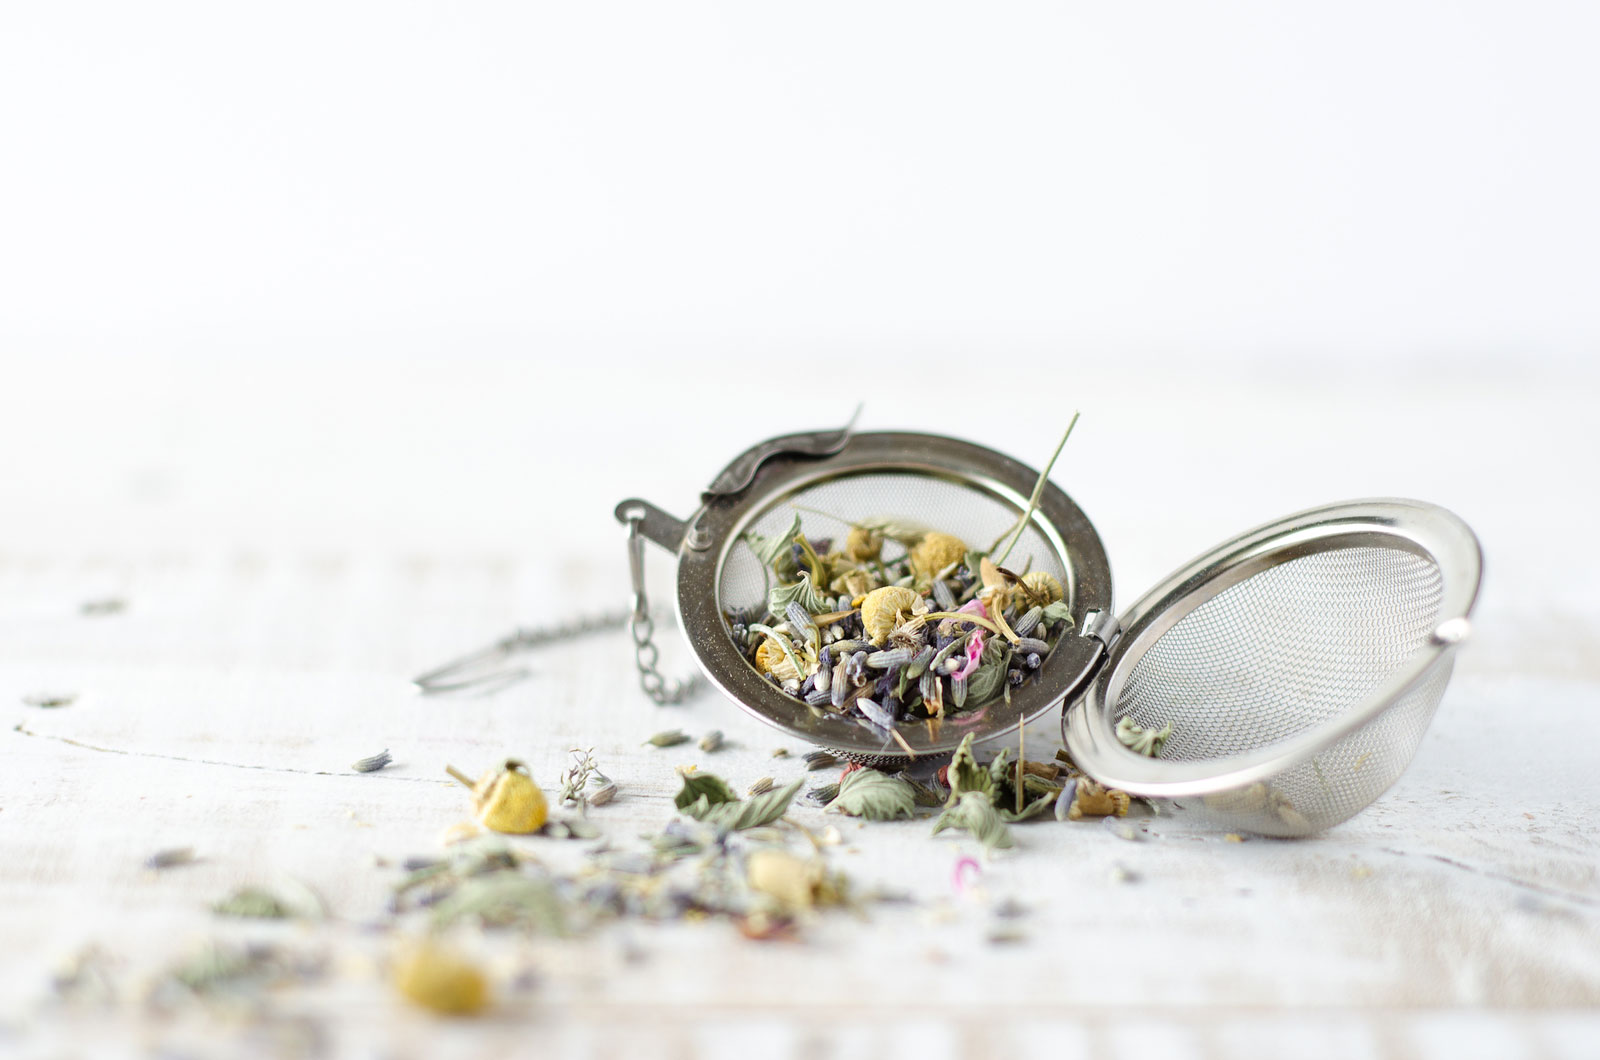 Tea Strainer | Is There A Benefit To Drinking Organic Tea vs. Regular Tea?